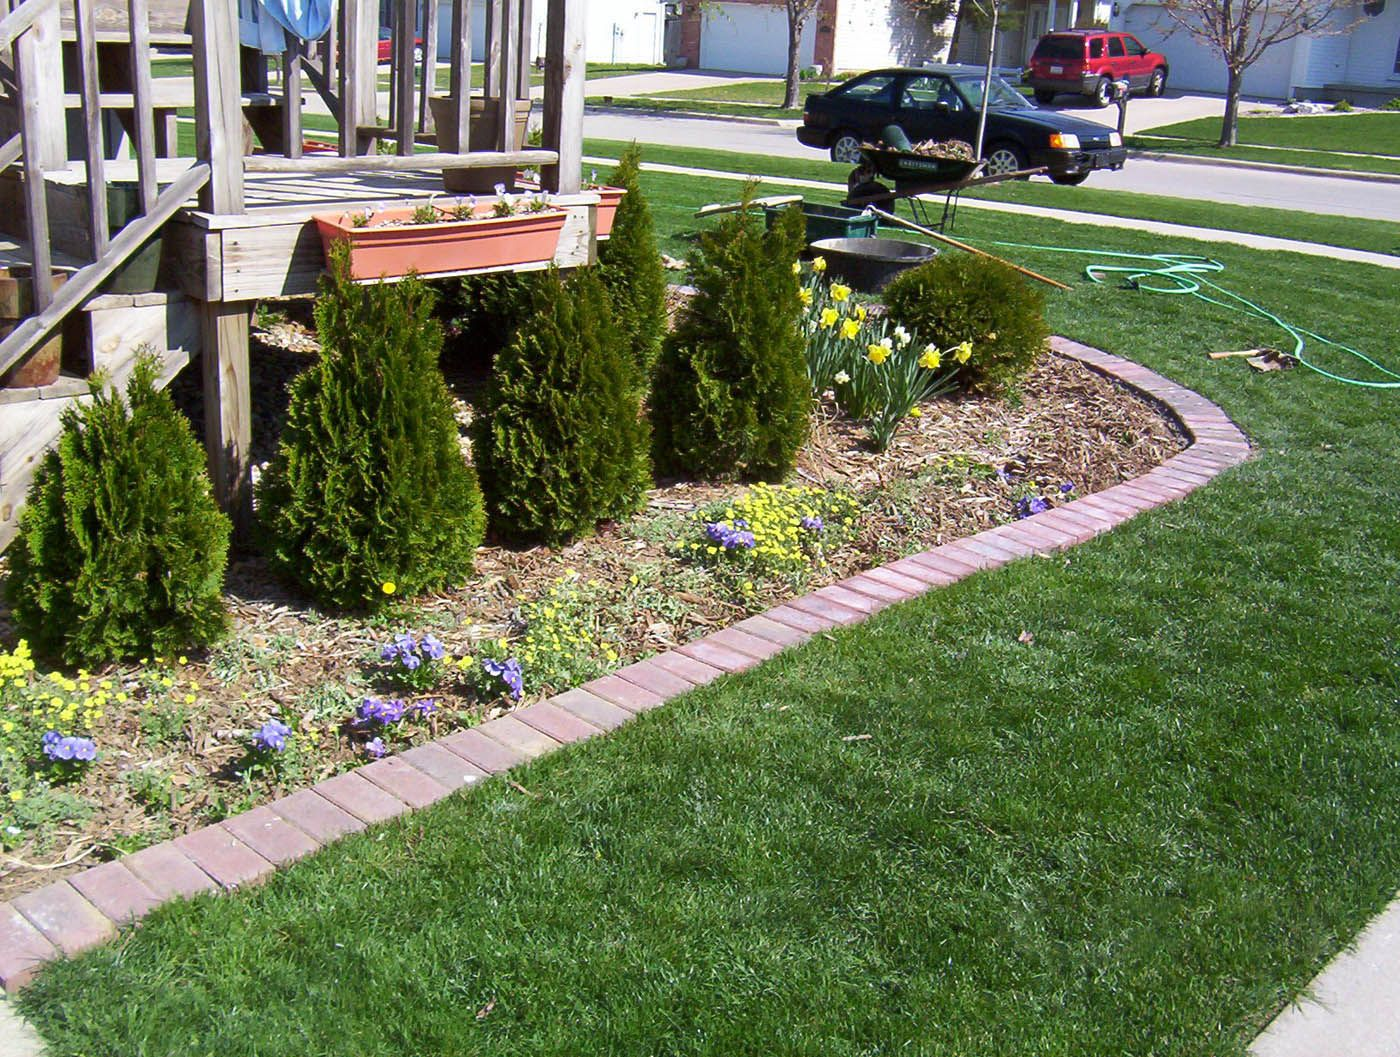 Simple flower bed edging design ideas lawn care for Simple flower garden design